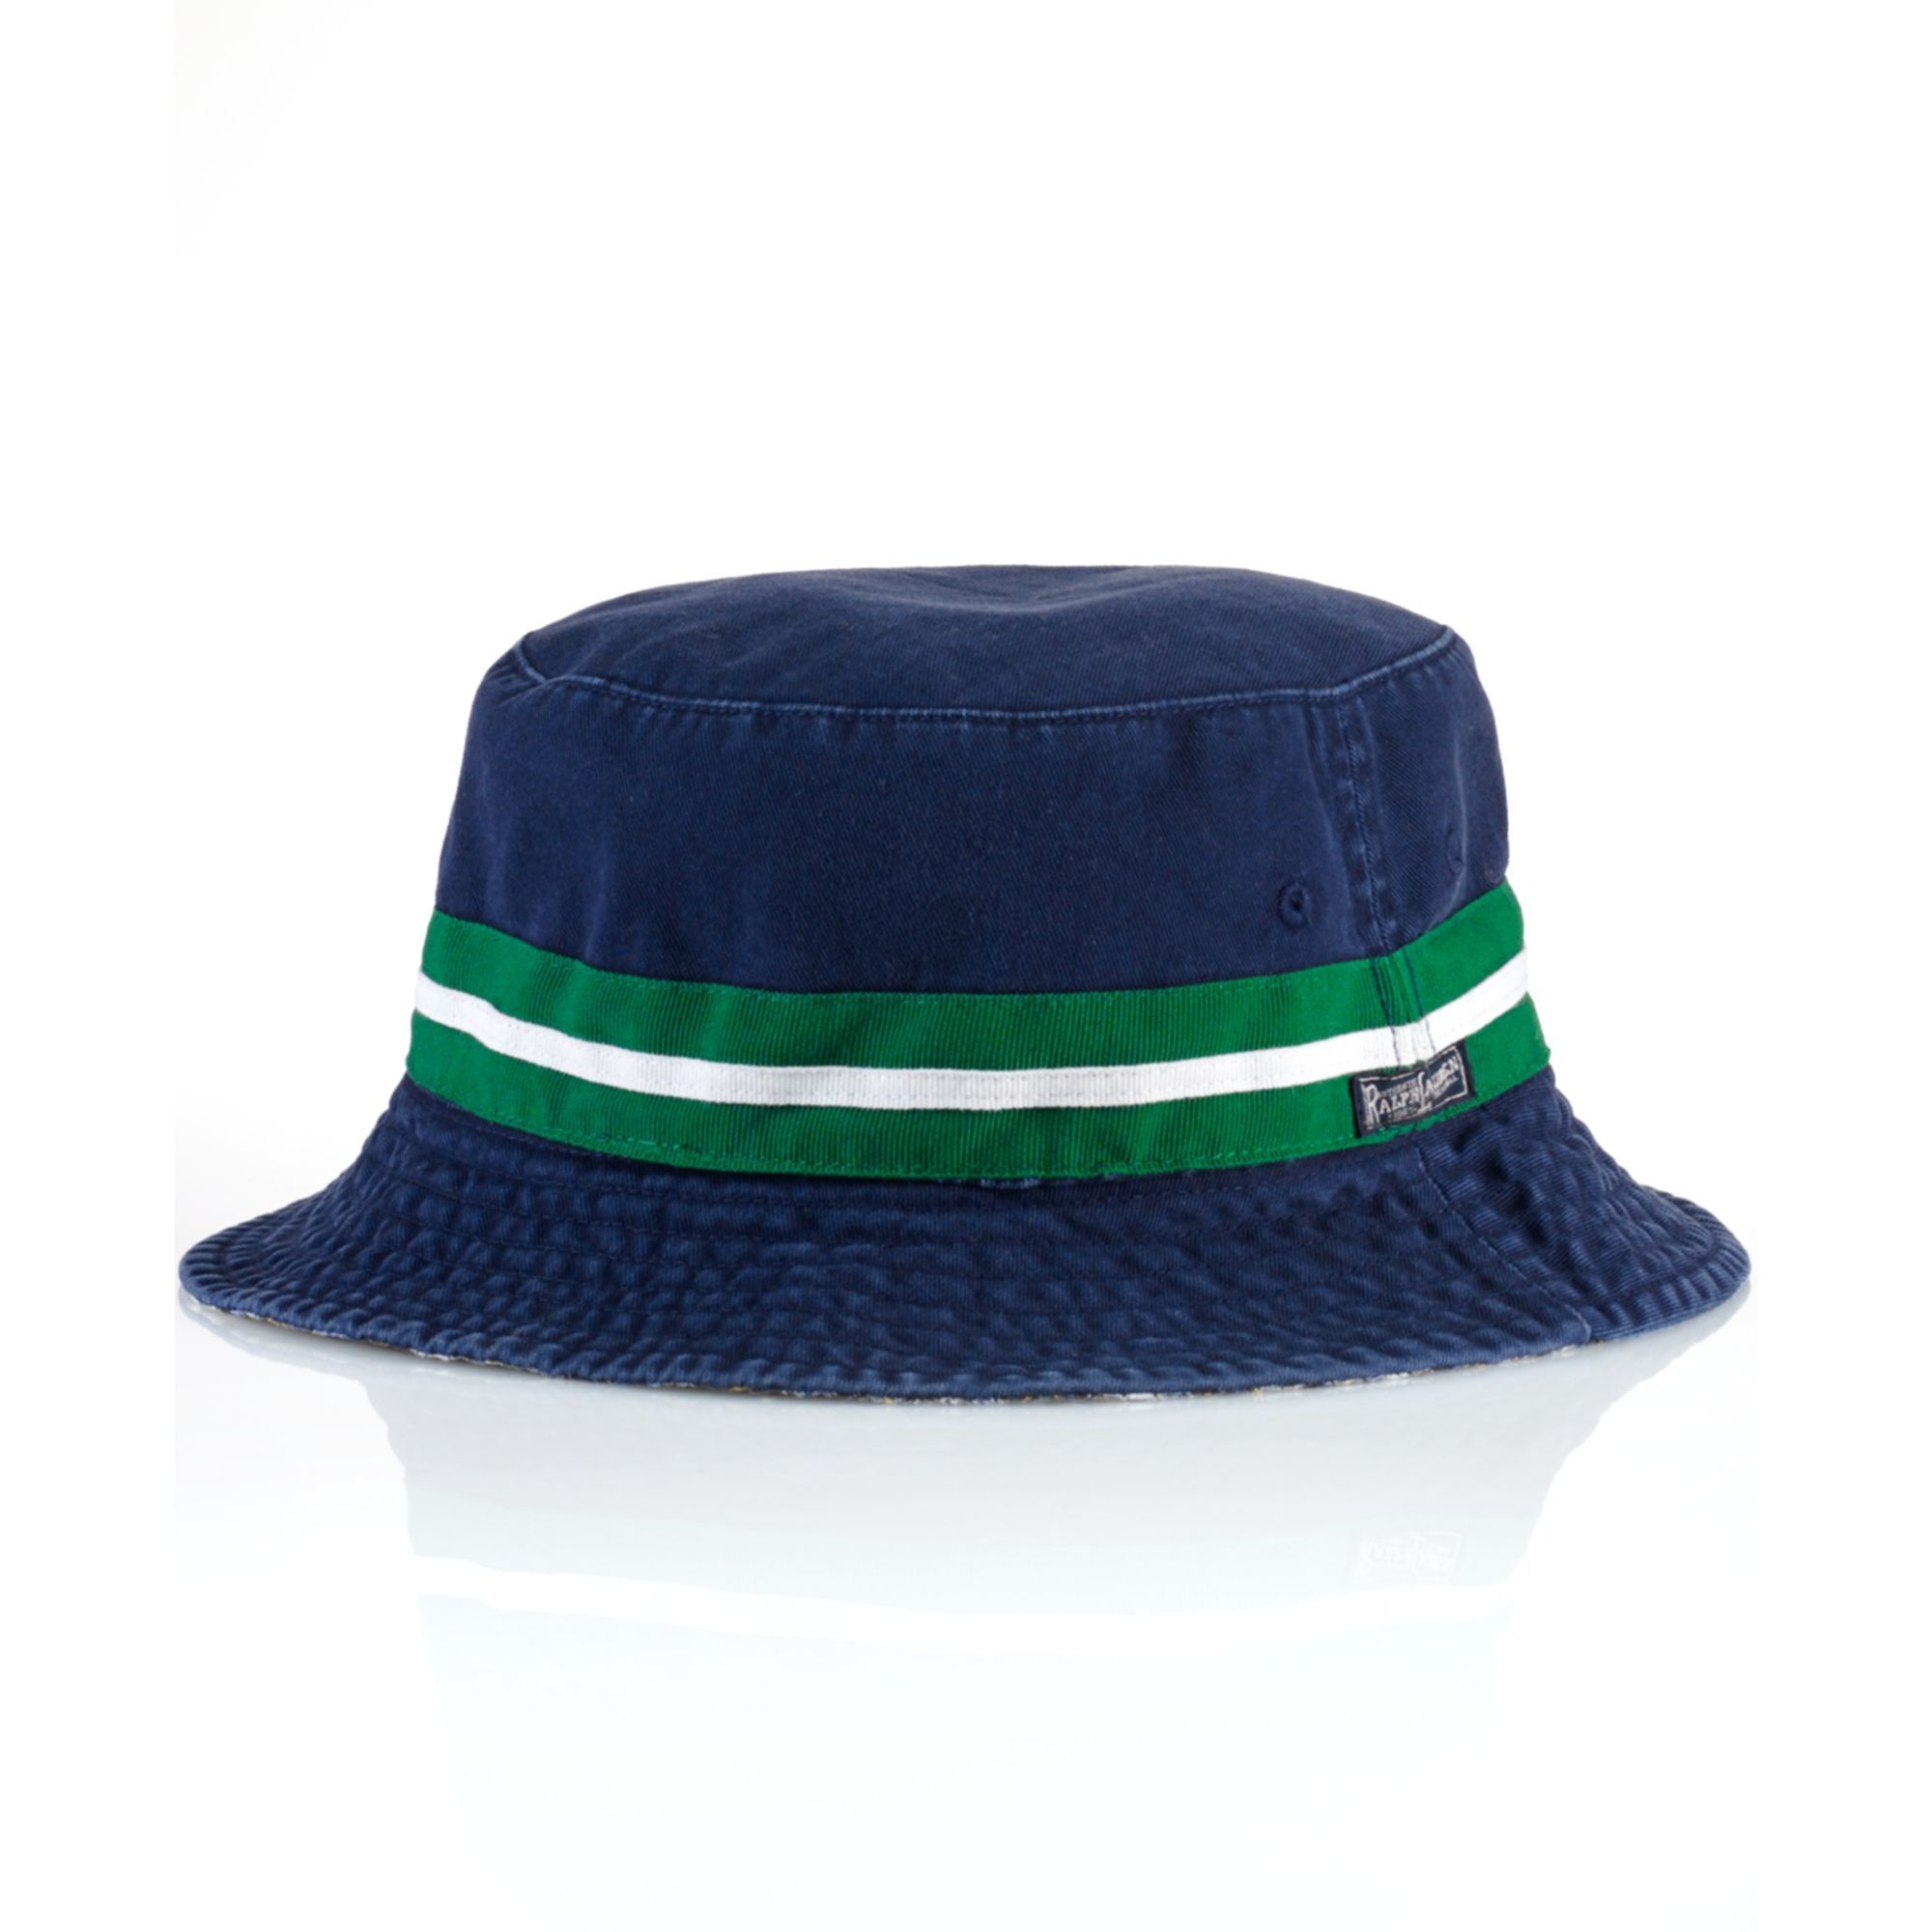 the gallery for gt polo bucket hat